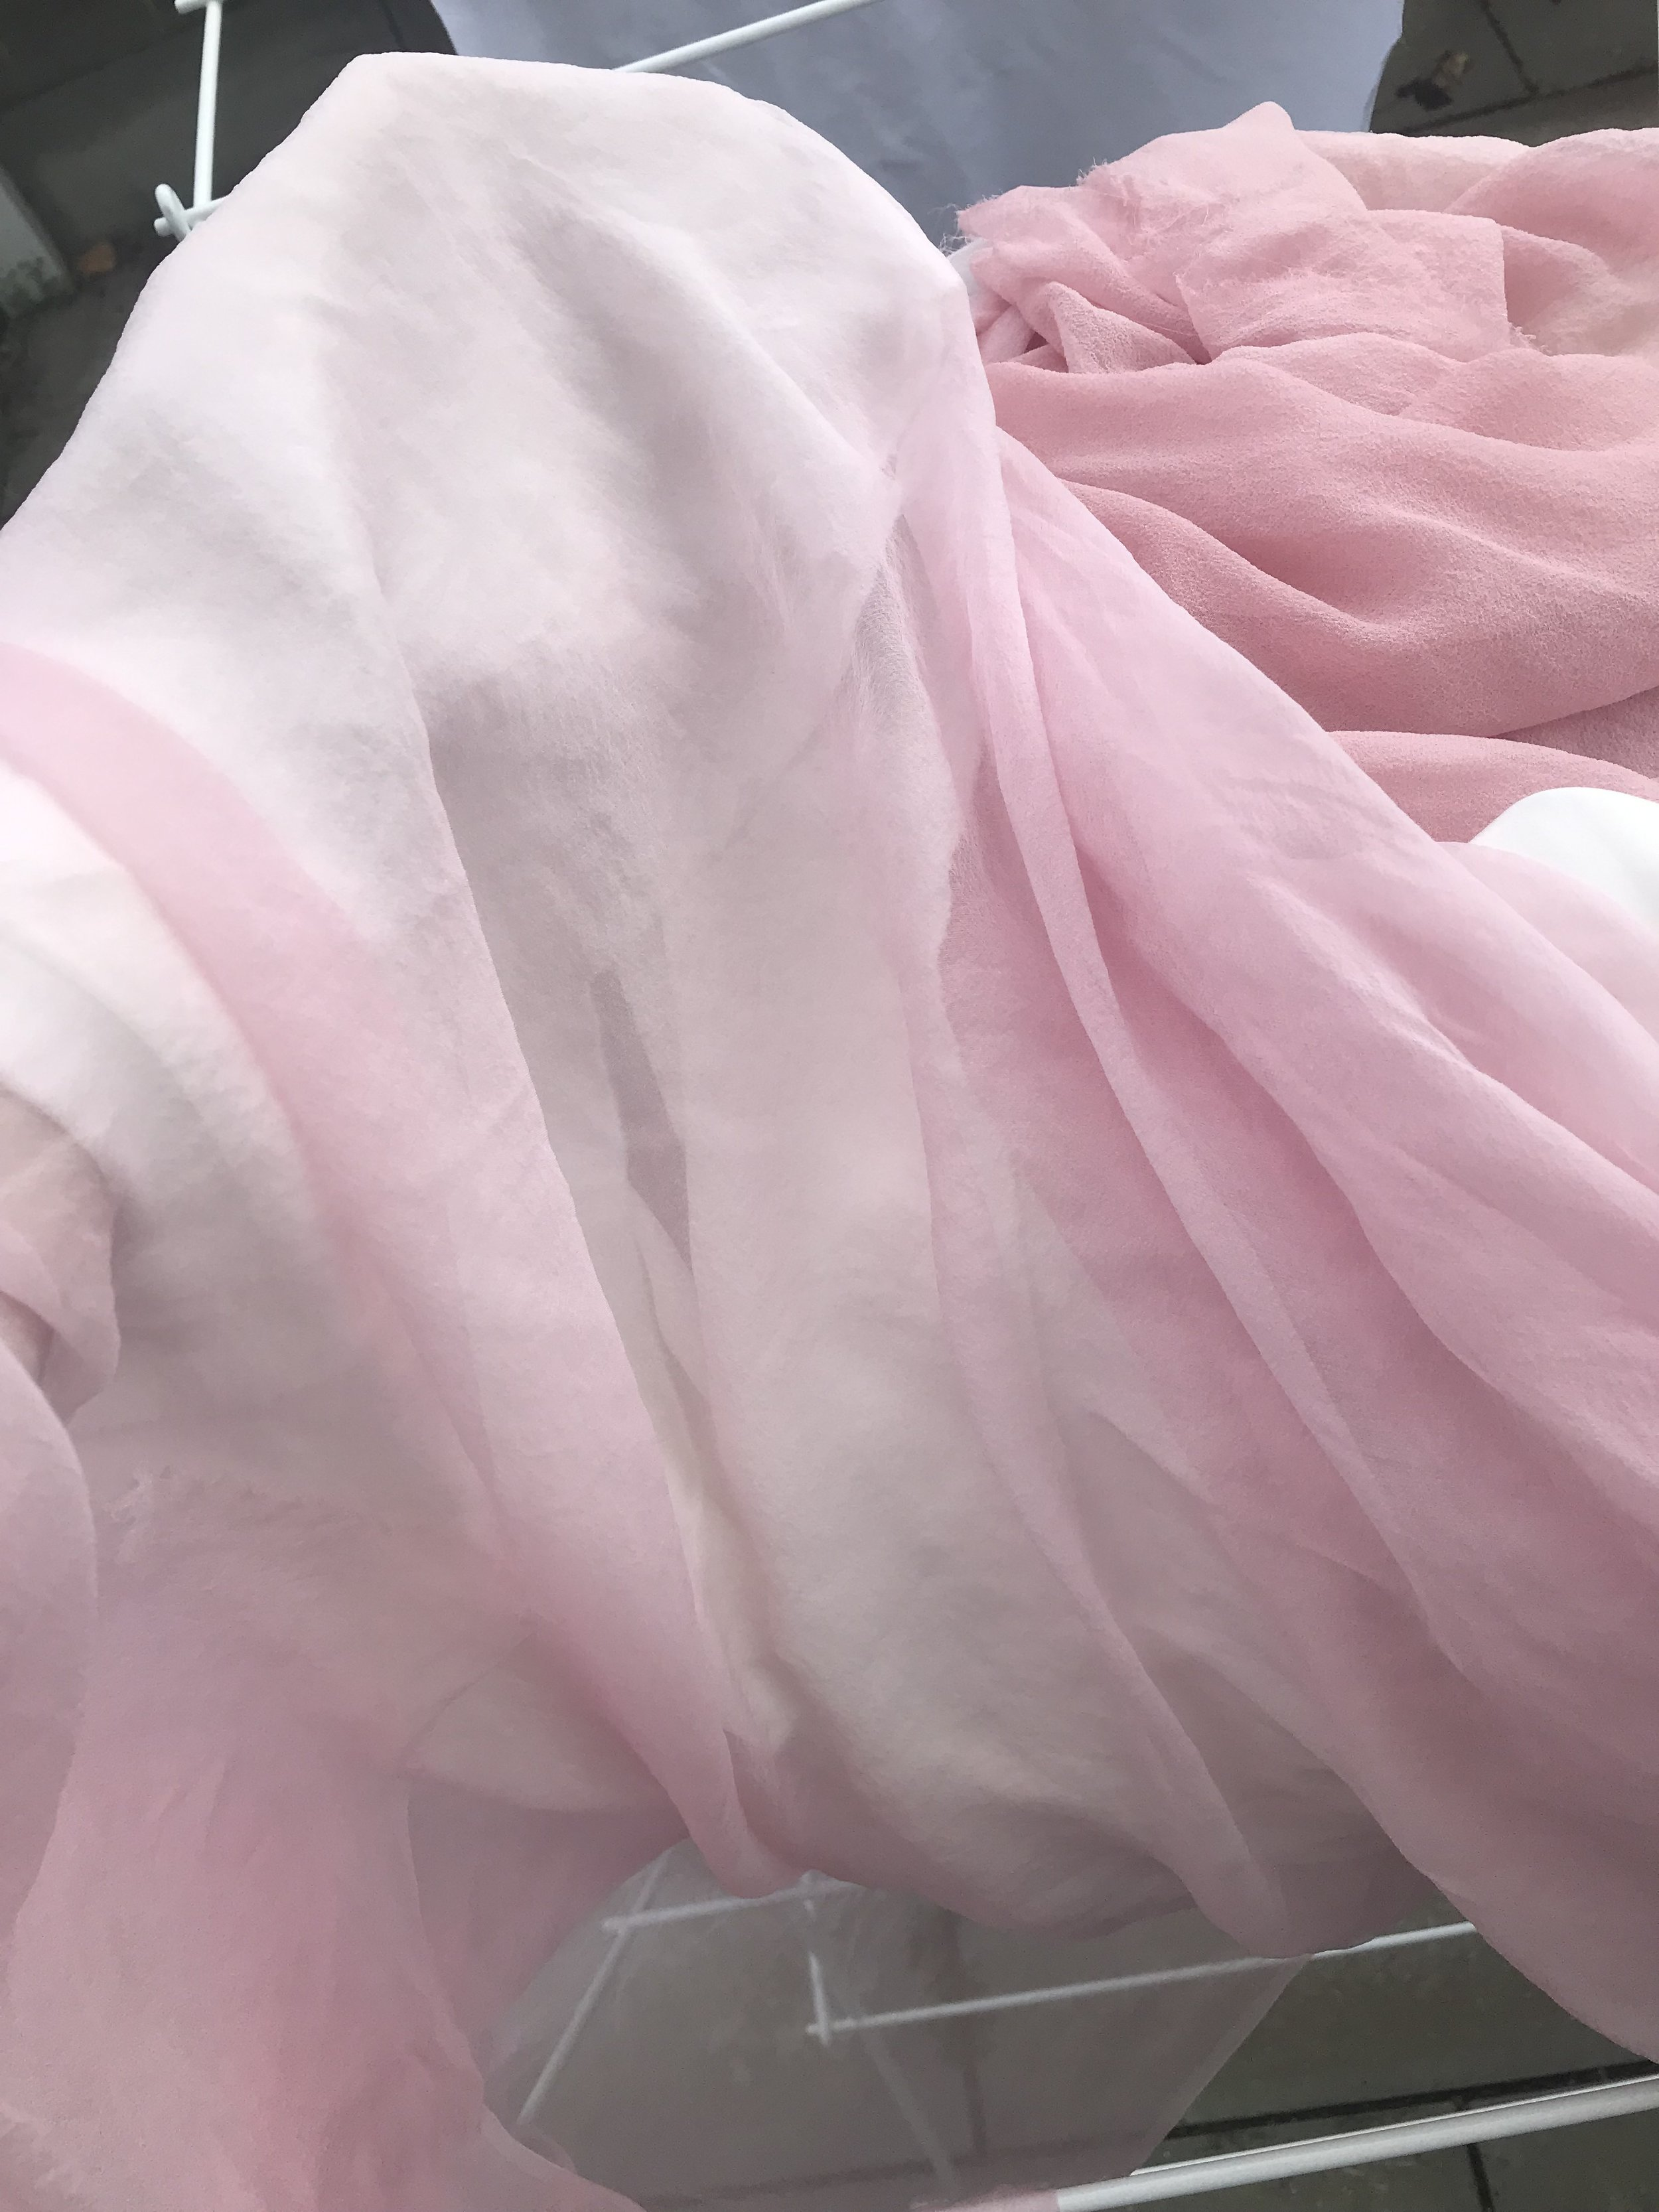 This is the first gauze (middle dress layer) over the white silk satin before dyeing. the too-pink chiffon is in the background.